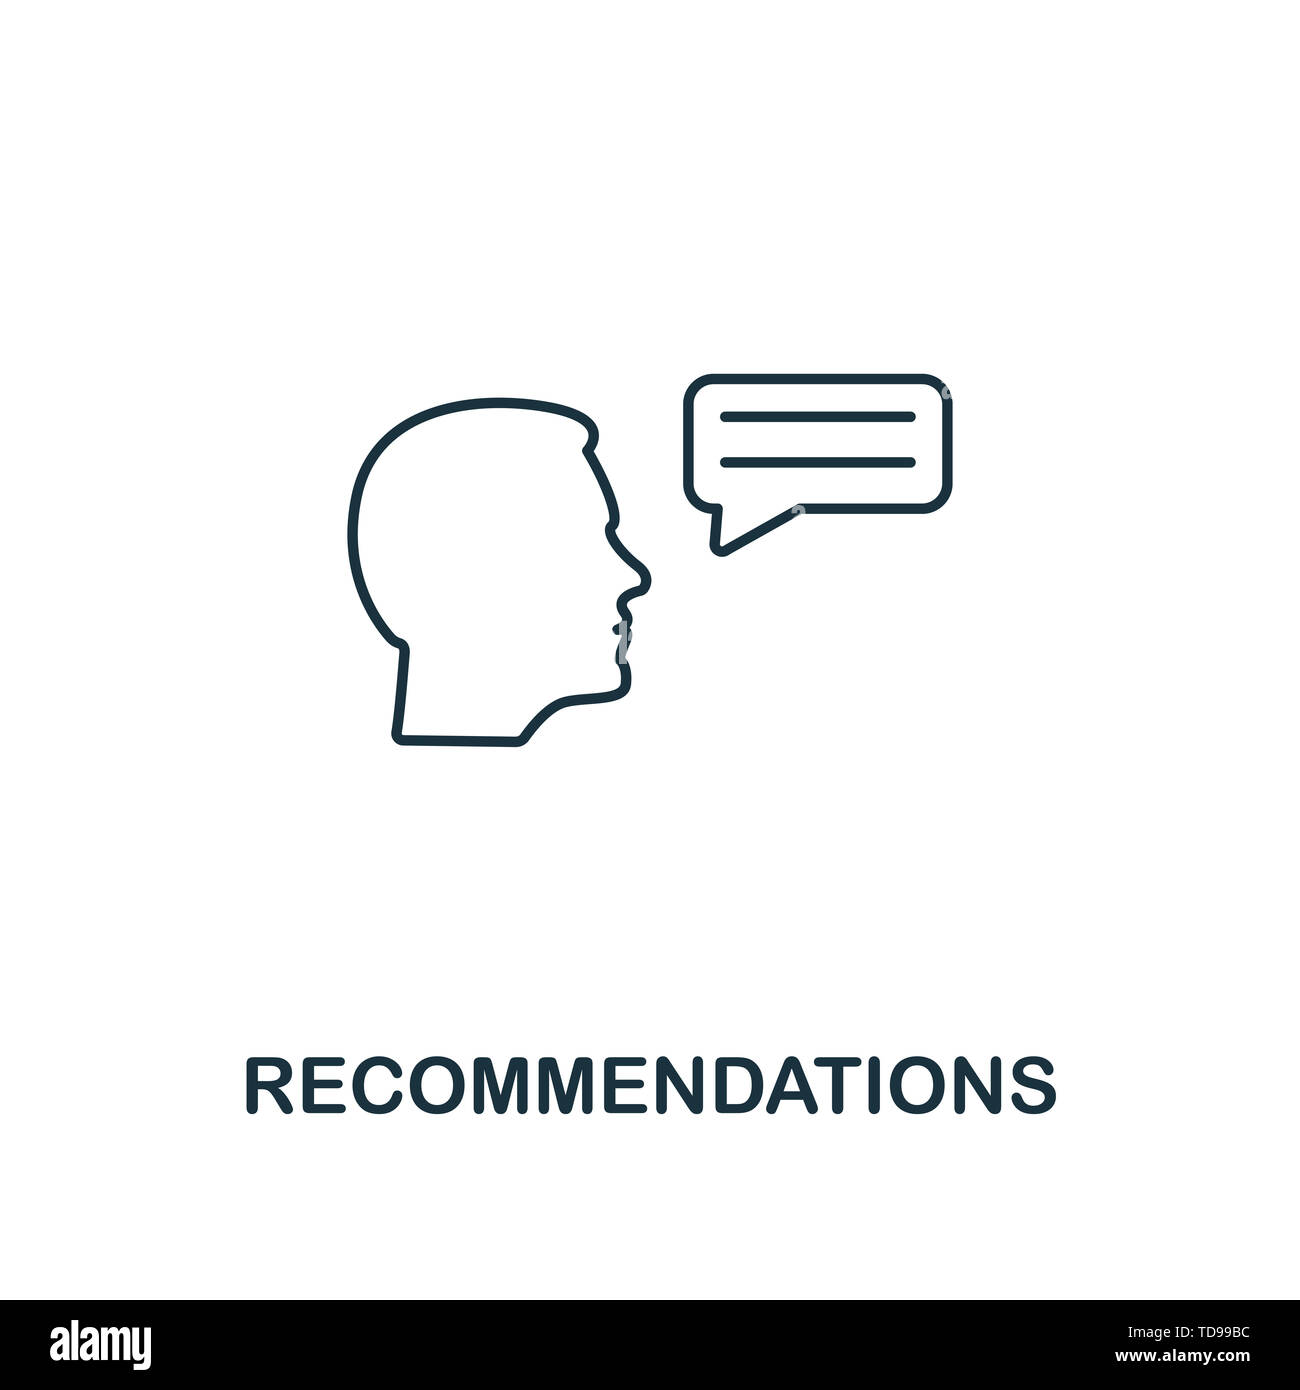 Recommendations icon. Thin line design symbol from business ethics icons collection. Pixel perfect recommendations icon for web design, apps, software - Stock Image